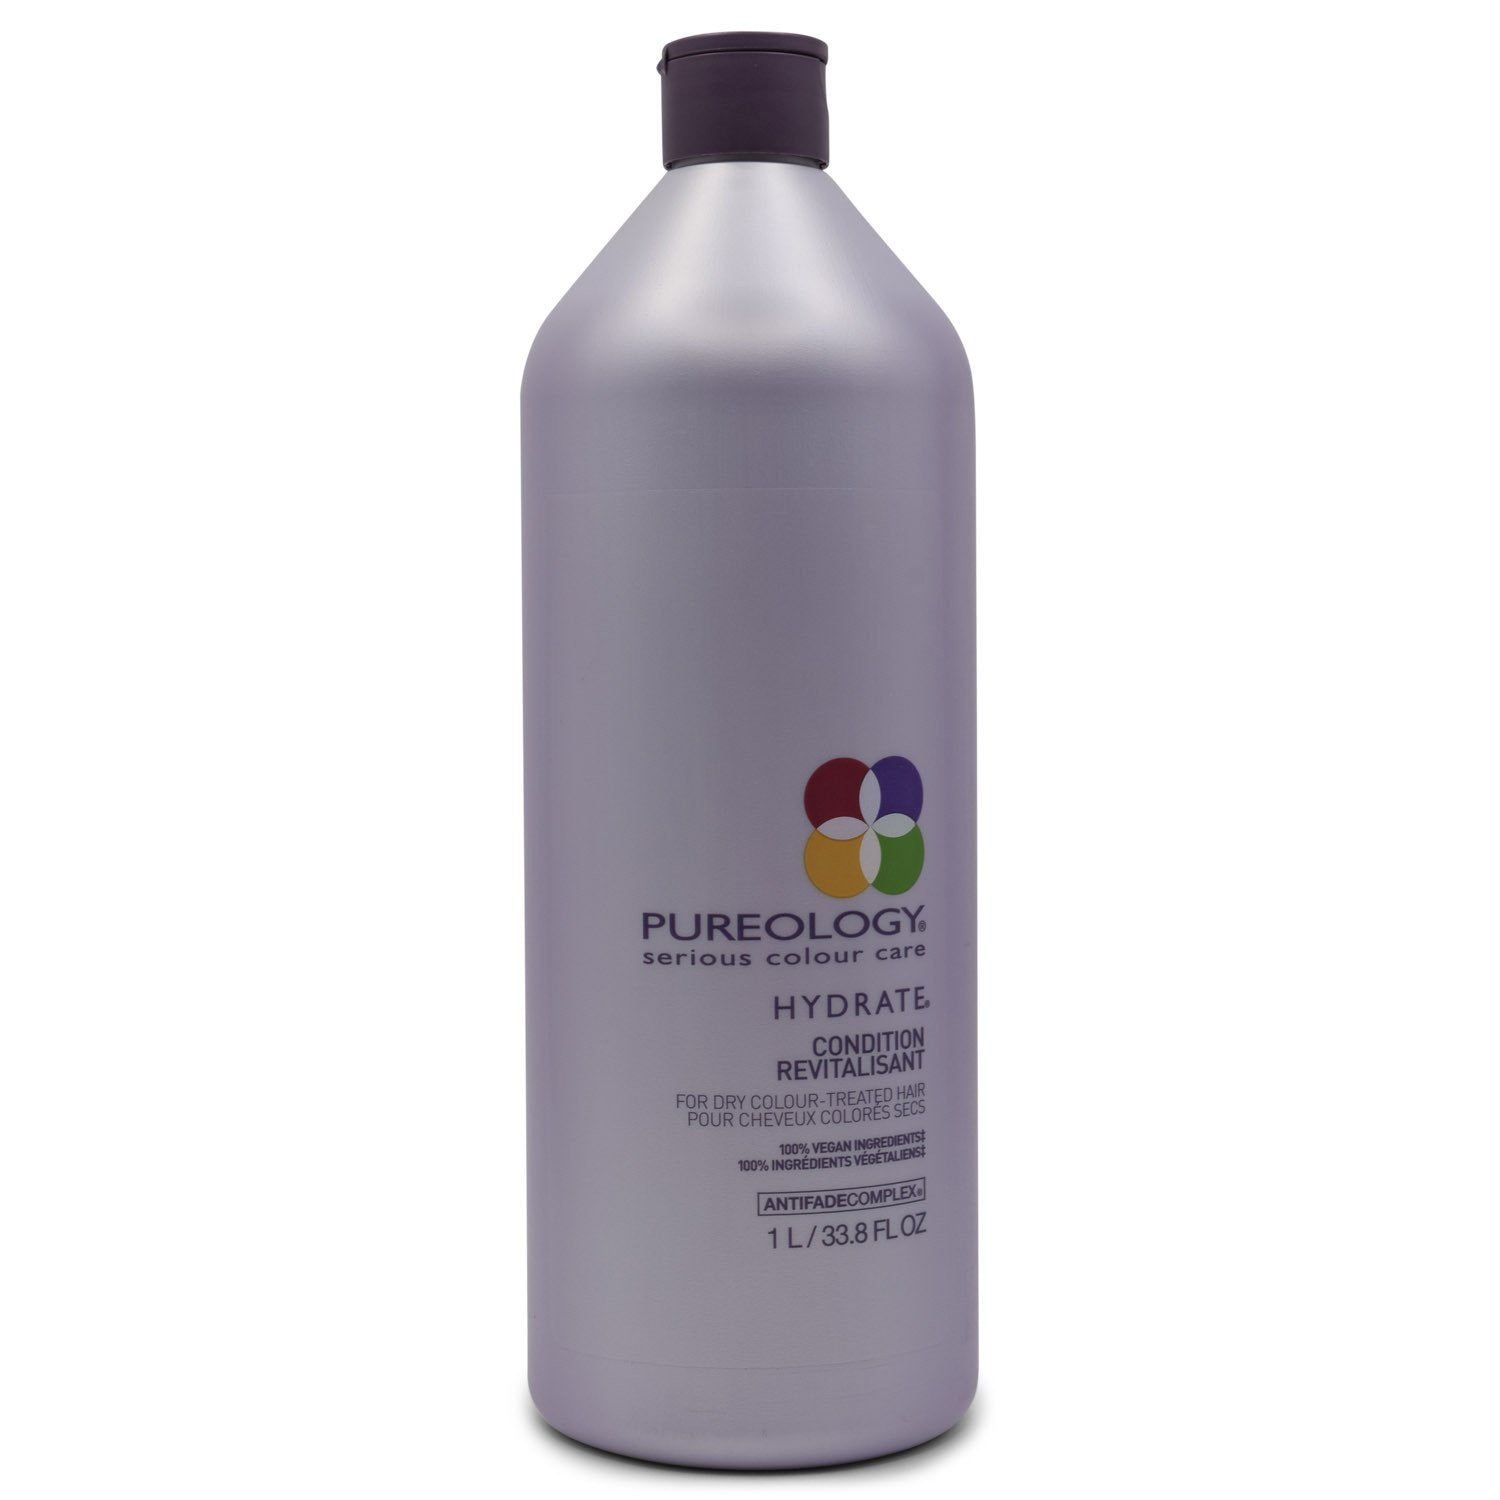 PUREOLOGY ~ Hydrate Conditioner 33.8 fl oz